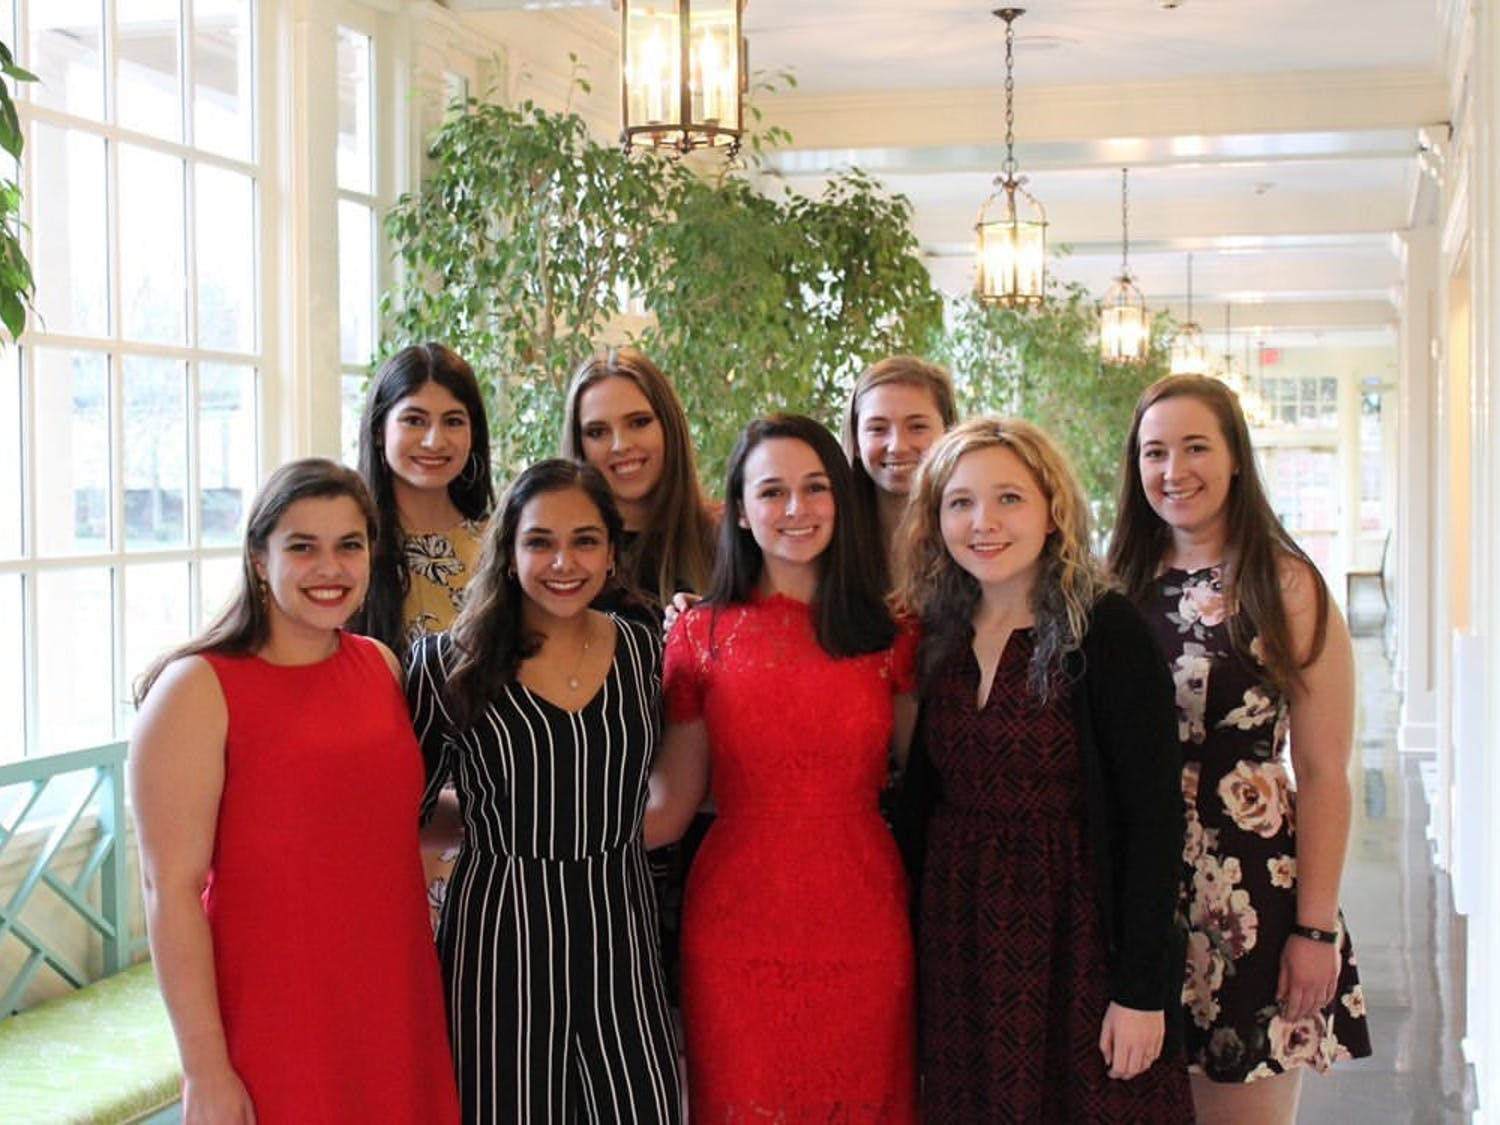 The She's the First executive team poses for a photo at last year's International Women's Day Tea. This year's event will occur at the Carolina Inn on Sunday. Photo courtesy of Alexandra Smith.